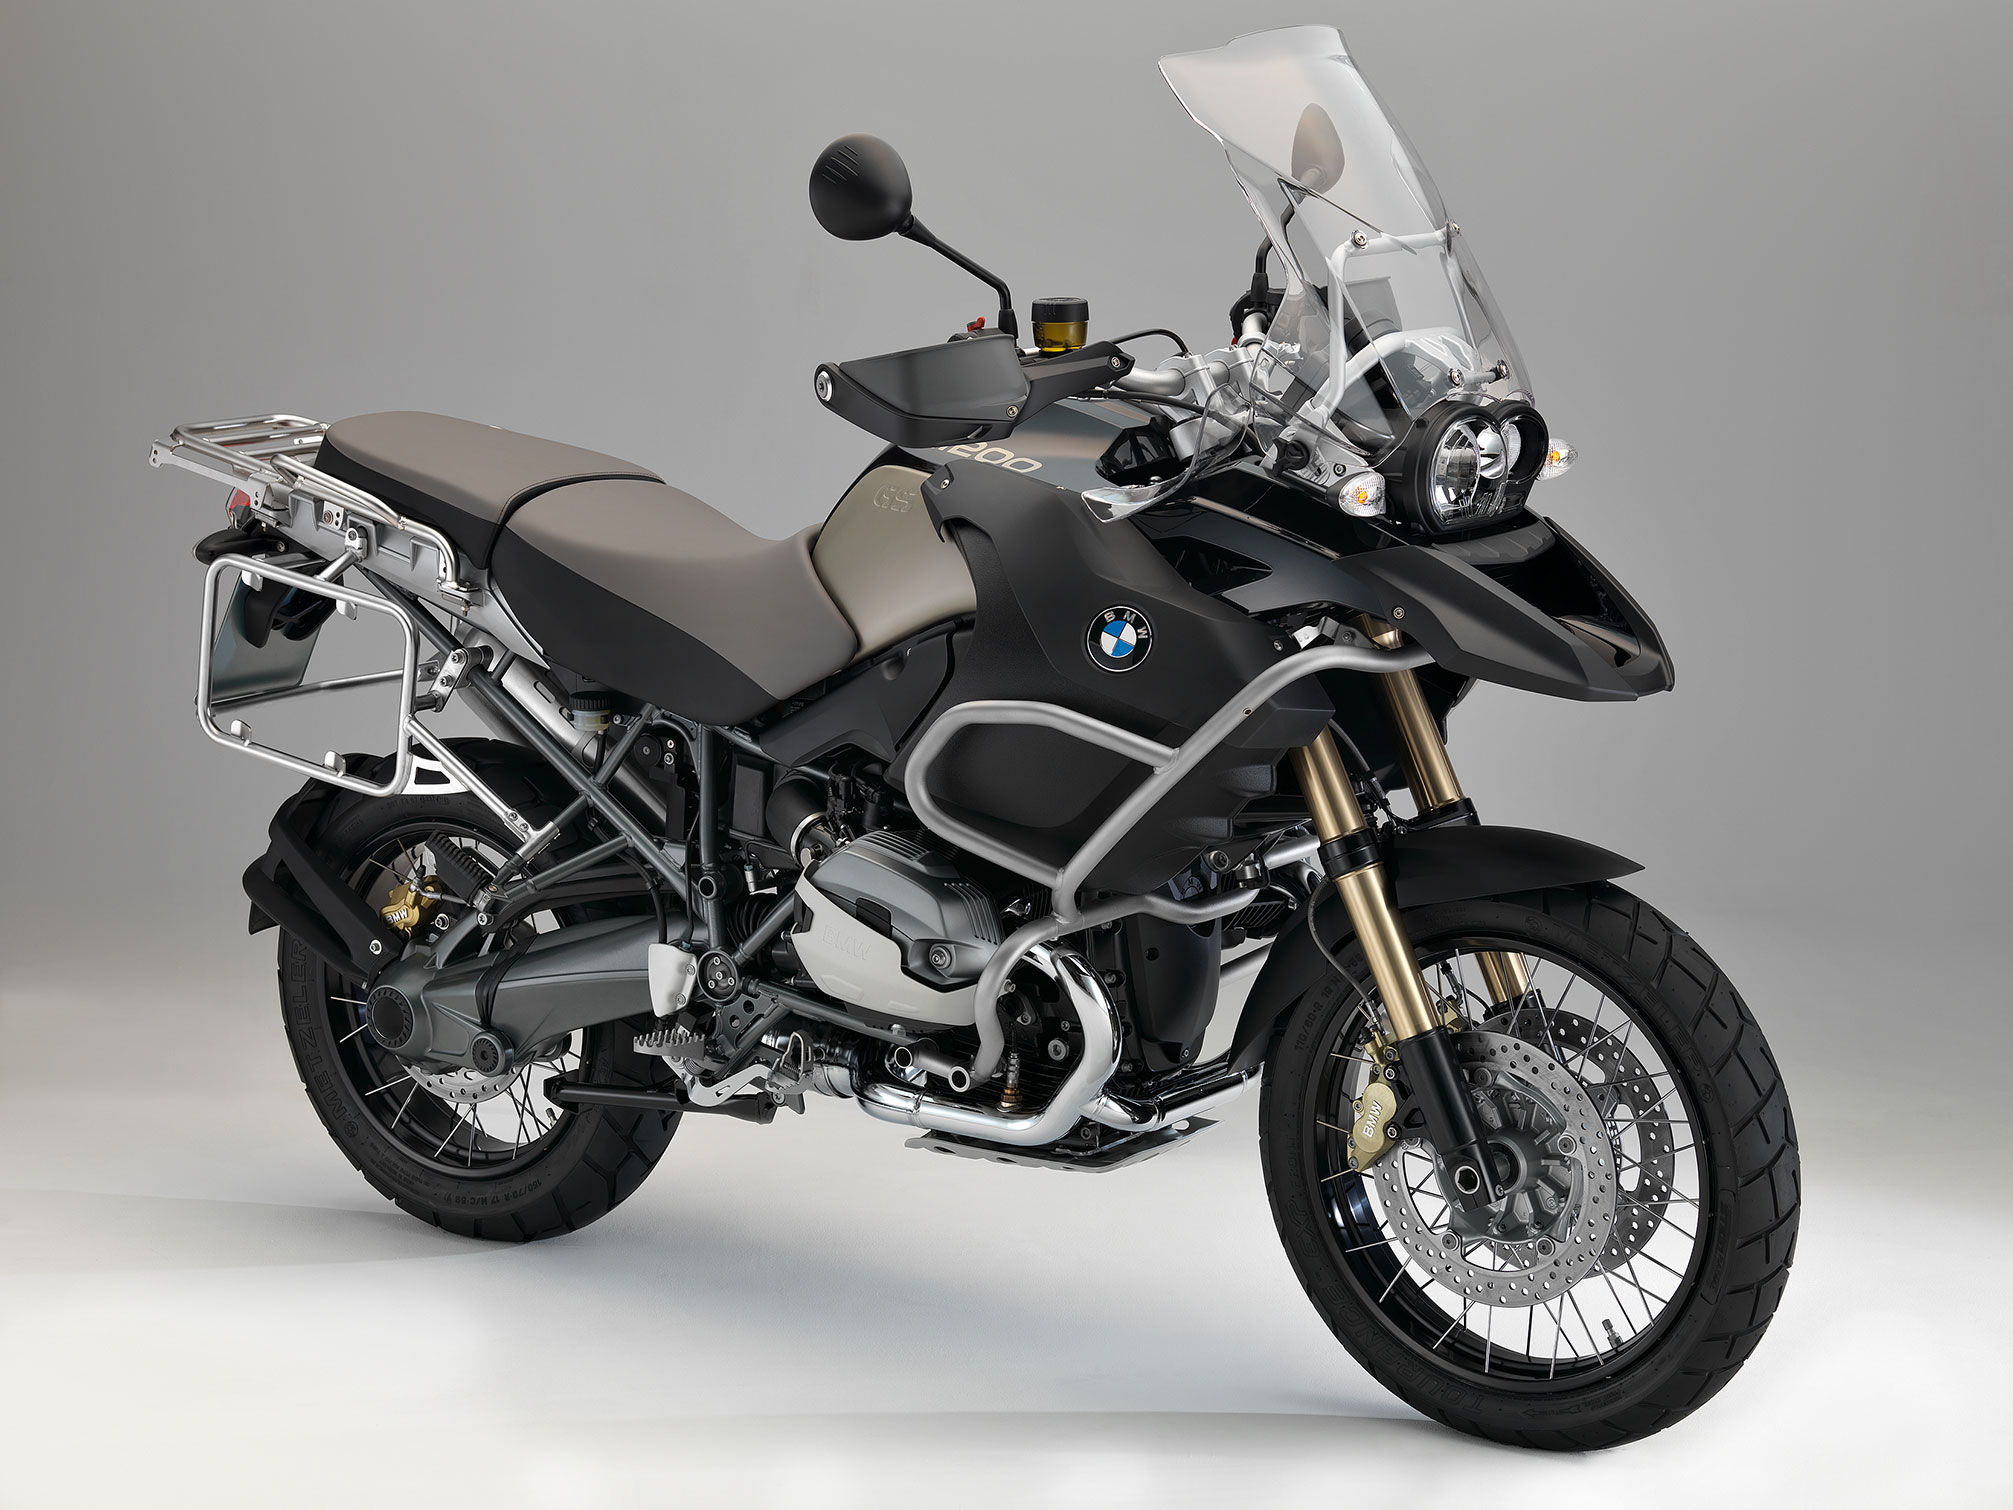 BMW R1200GS 2009 images #8203